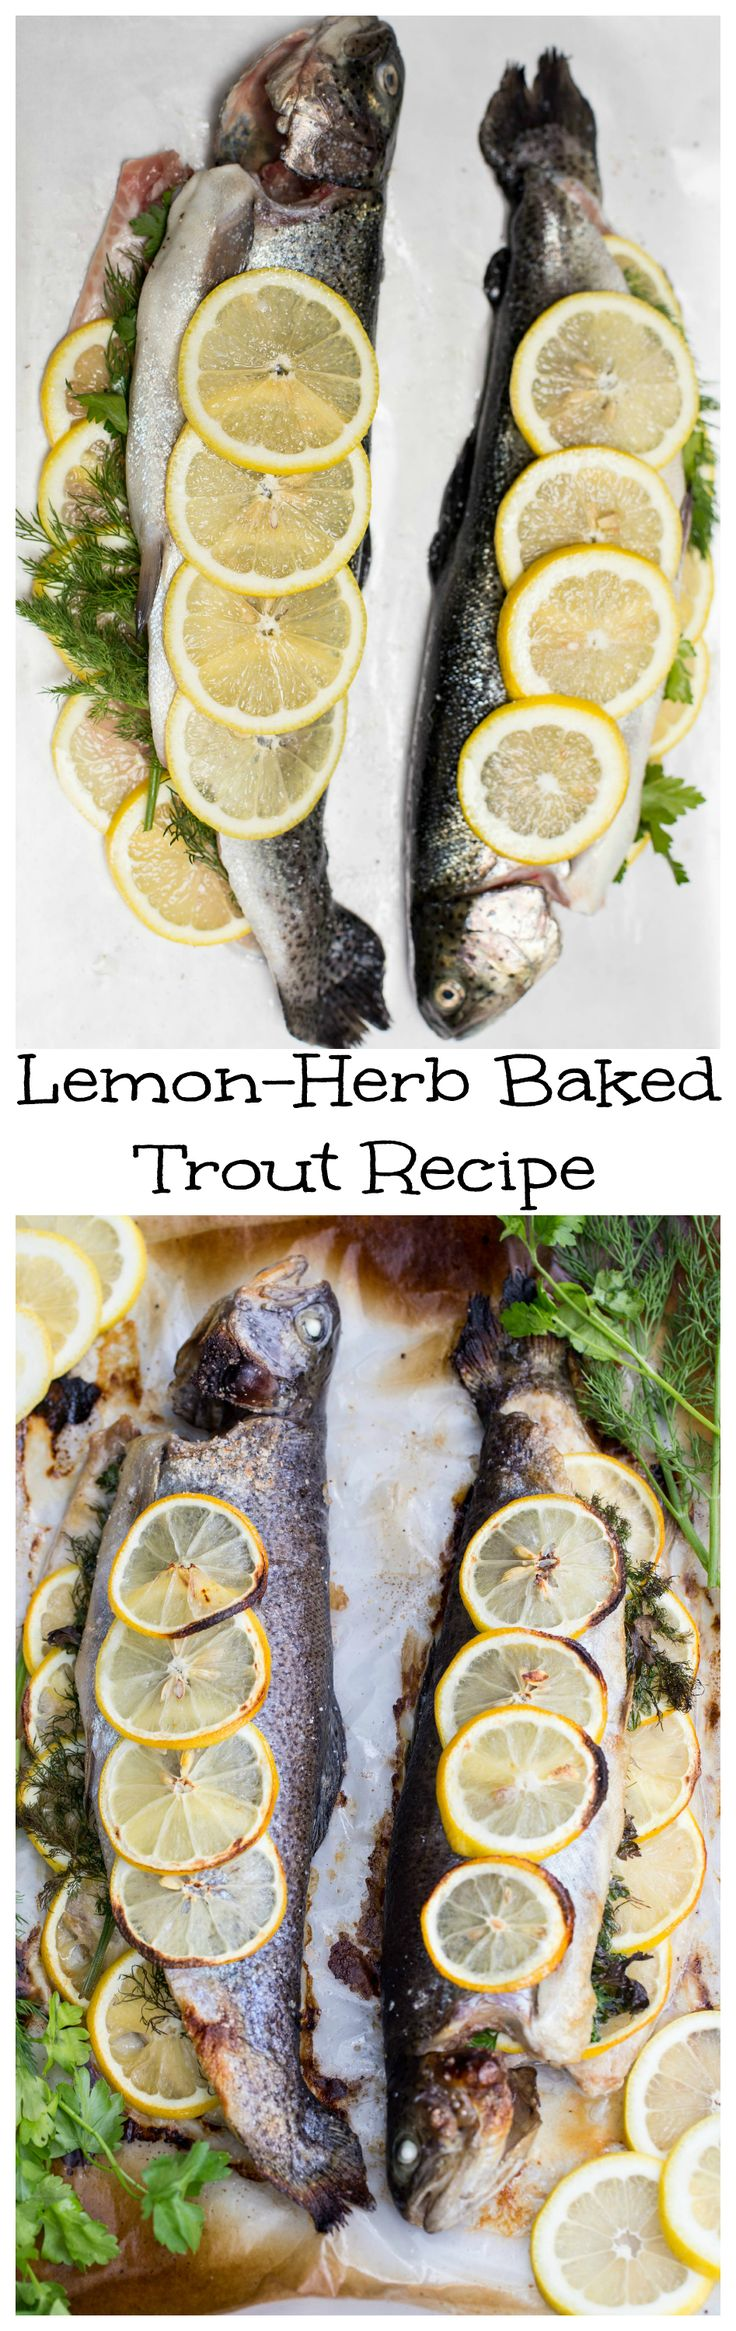 This recipe is incredible. Healthy, delicious and so quick to prepare. This type of dish makes it easy being a home cook.